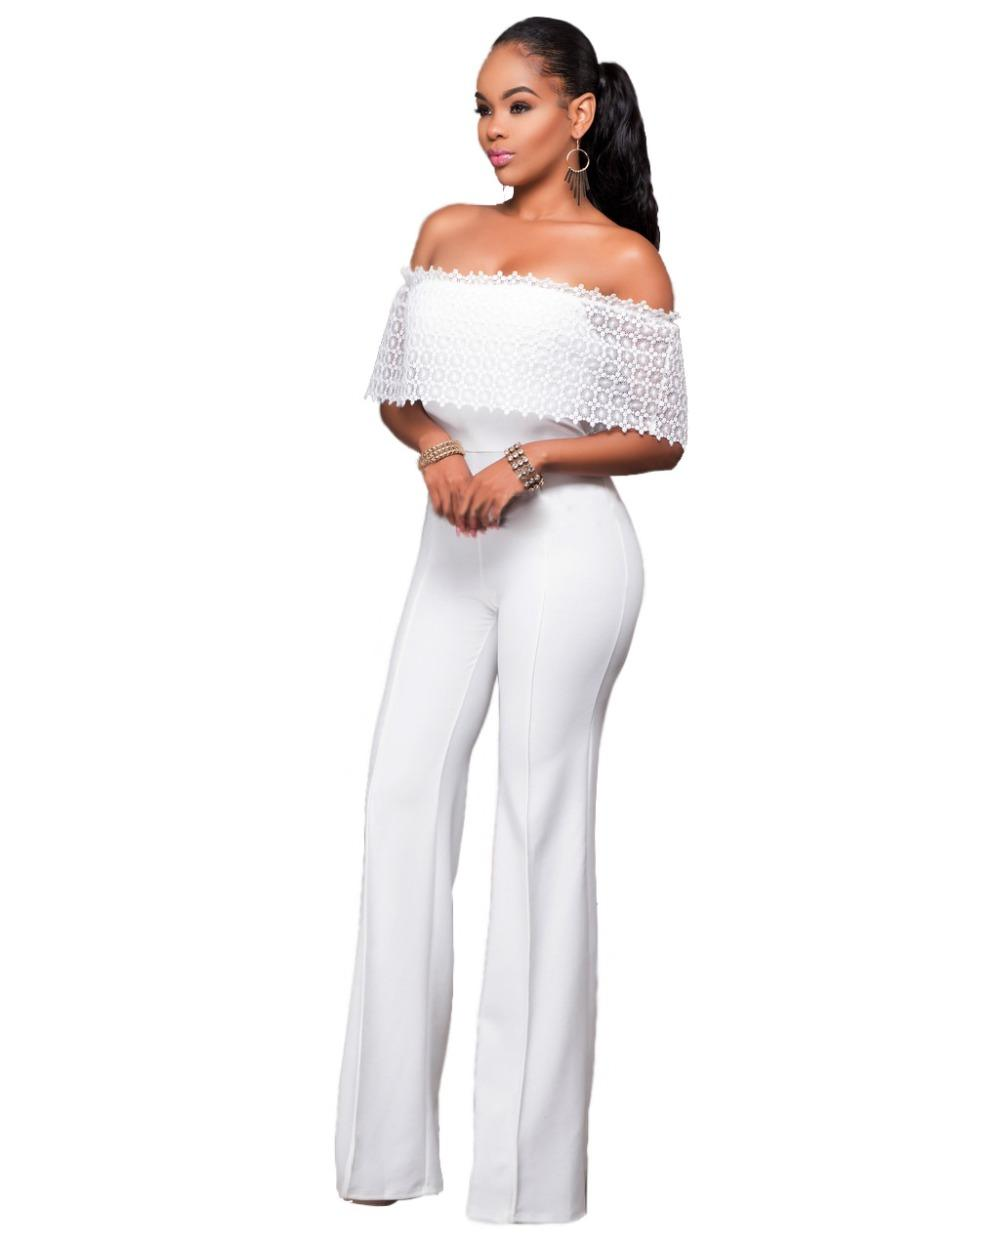 d8862ca5868 2019 Wholesale Women Ruffles Lace Party Jumpsuit Sexy Black White Off  Shoulder Wide Leg Long Playsuit Fashion Side Zipper Macacao Feminino From  Vanilla03